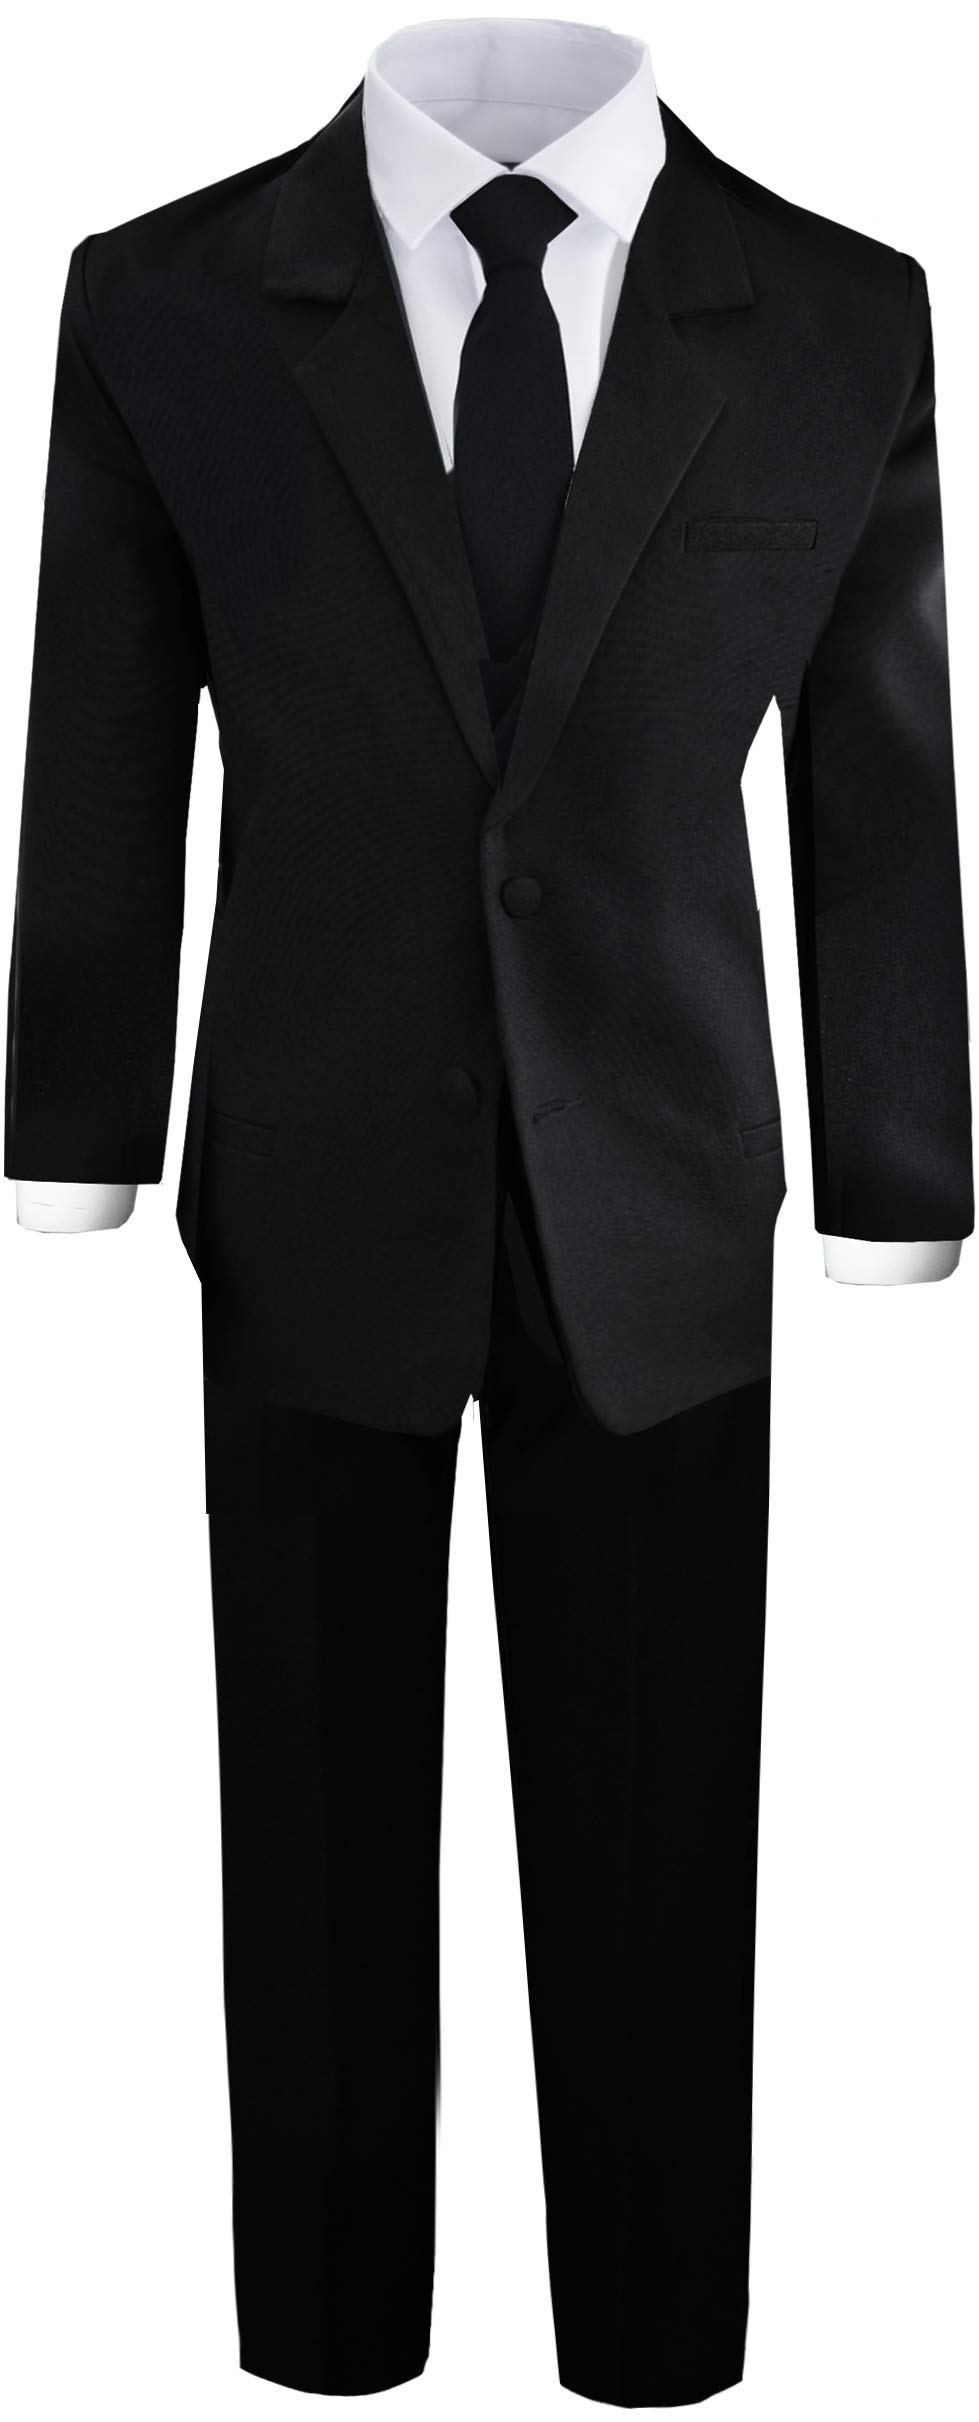 Boys Black Tuxedo Suit with Tie Young Boys Youth Size 8 by Black n Bianco